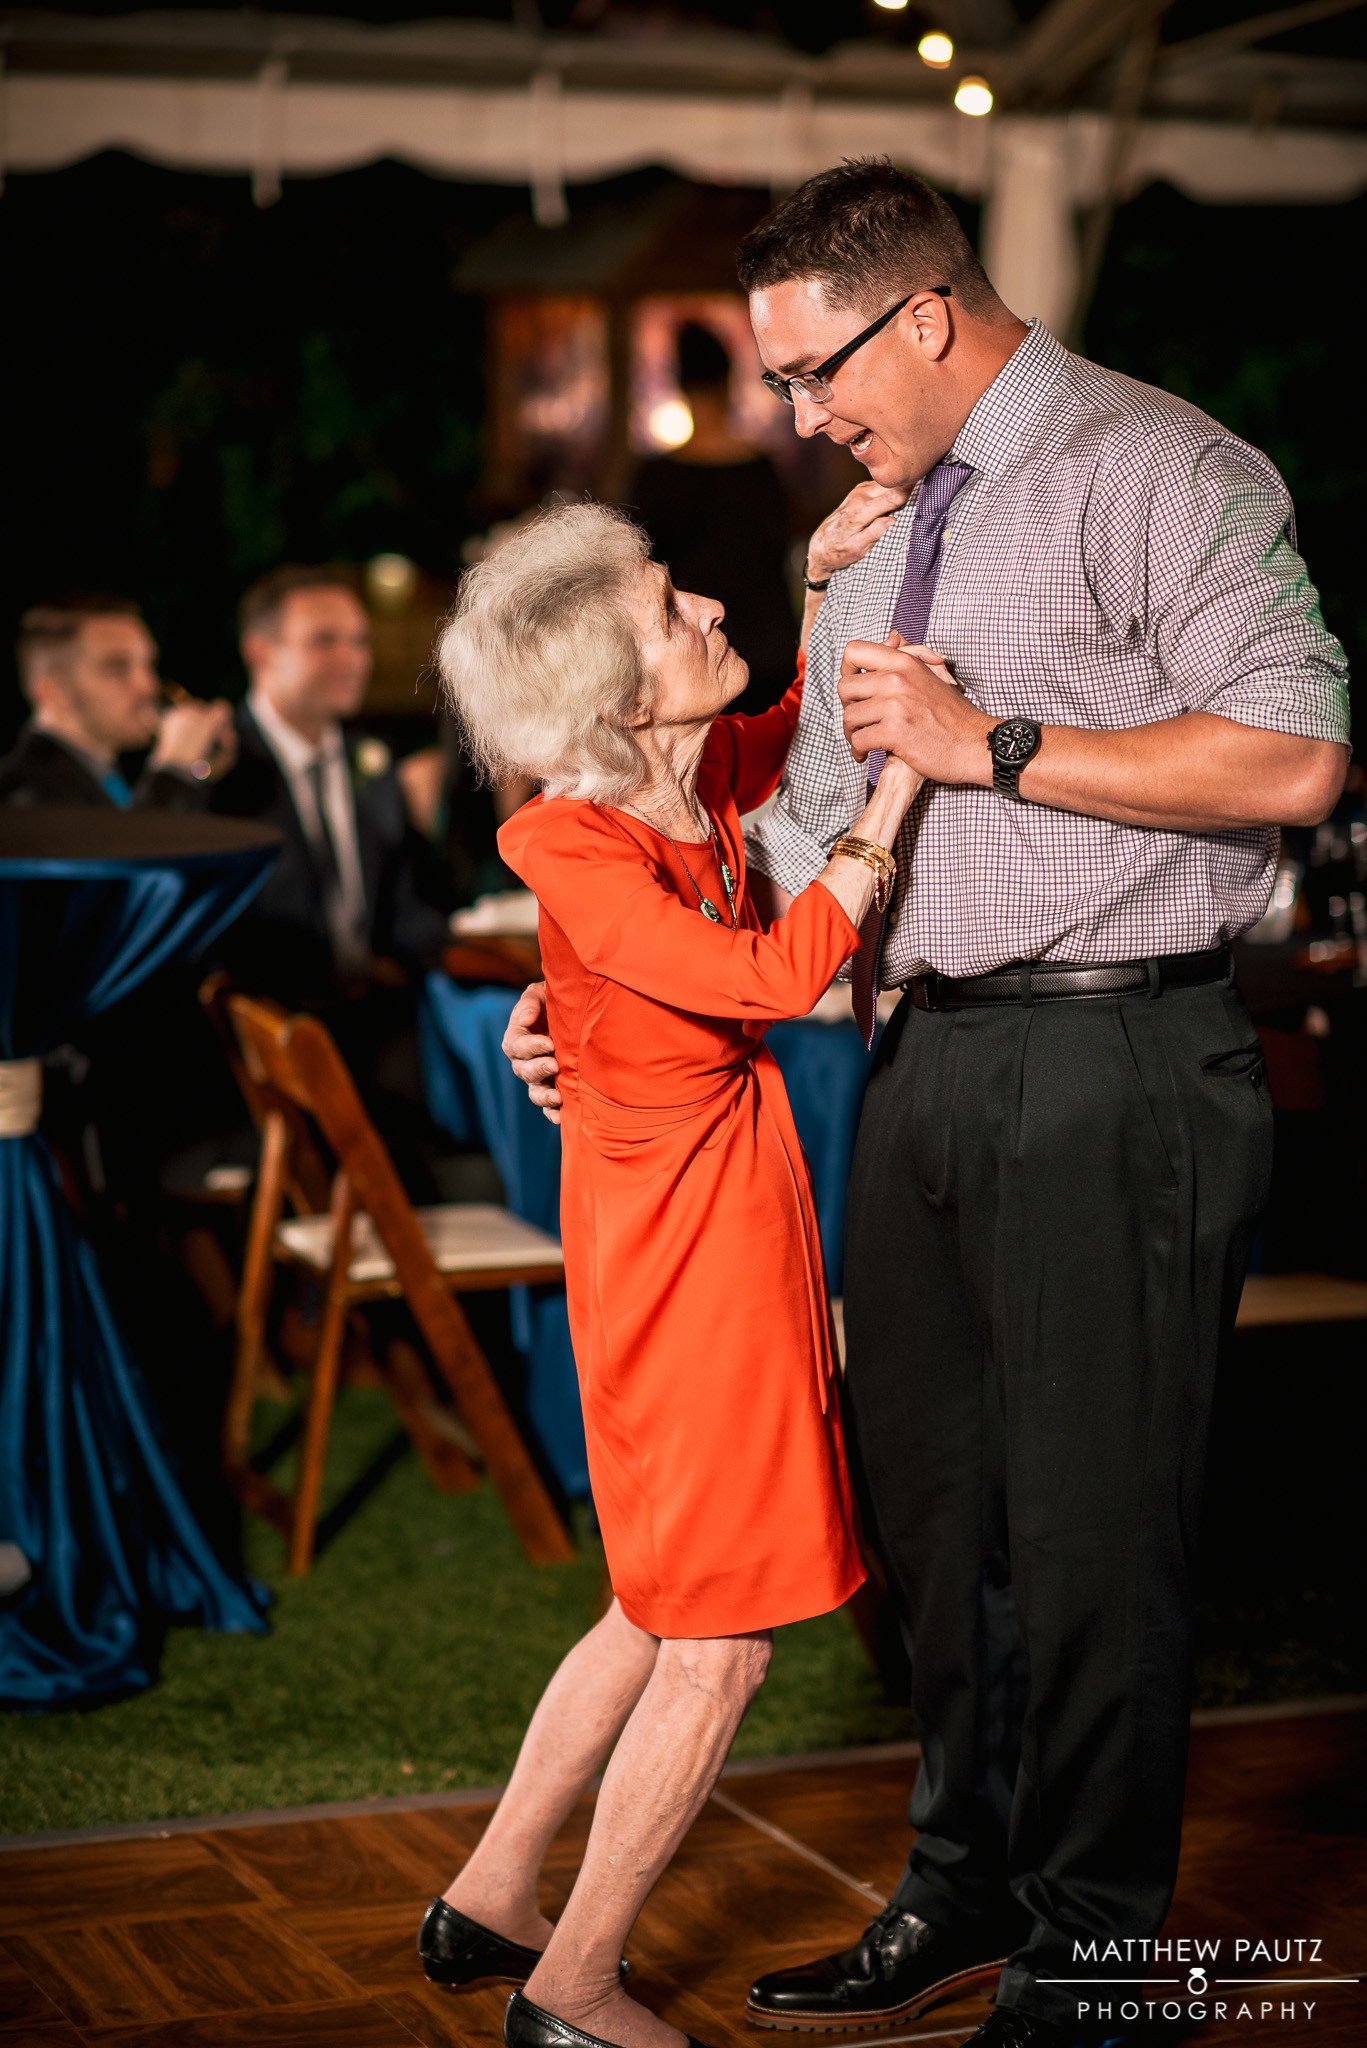 Even Grandma had to have a chance to dance!